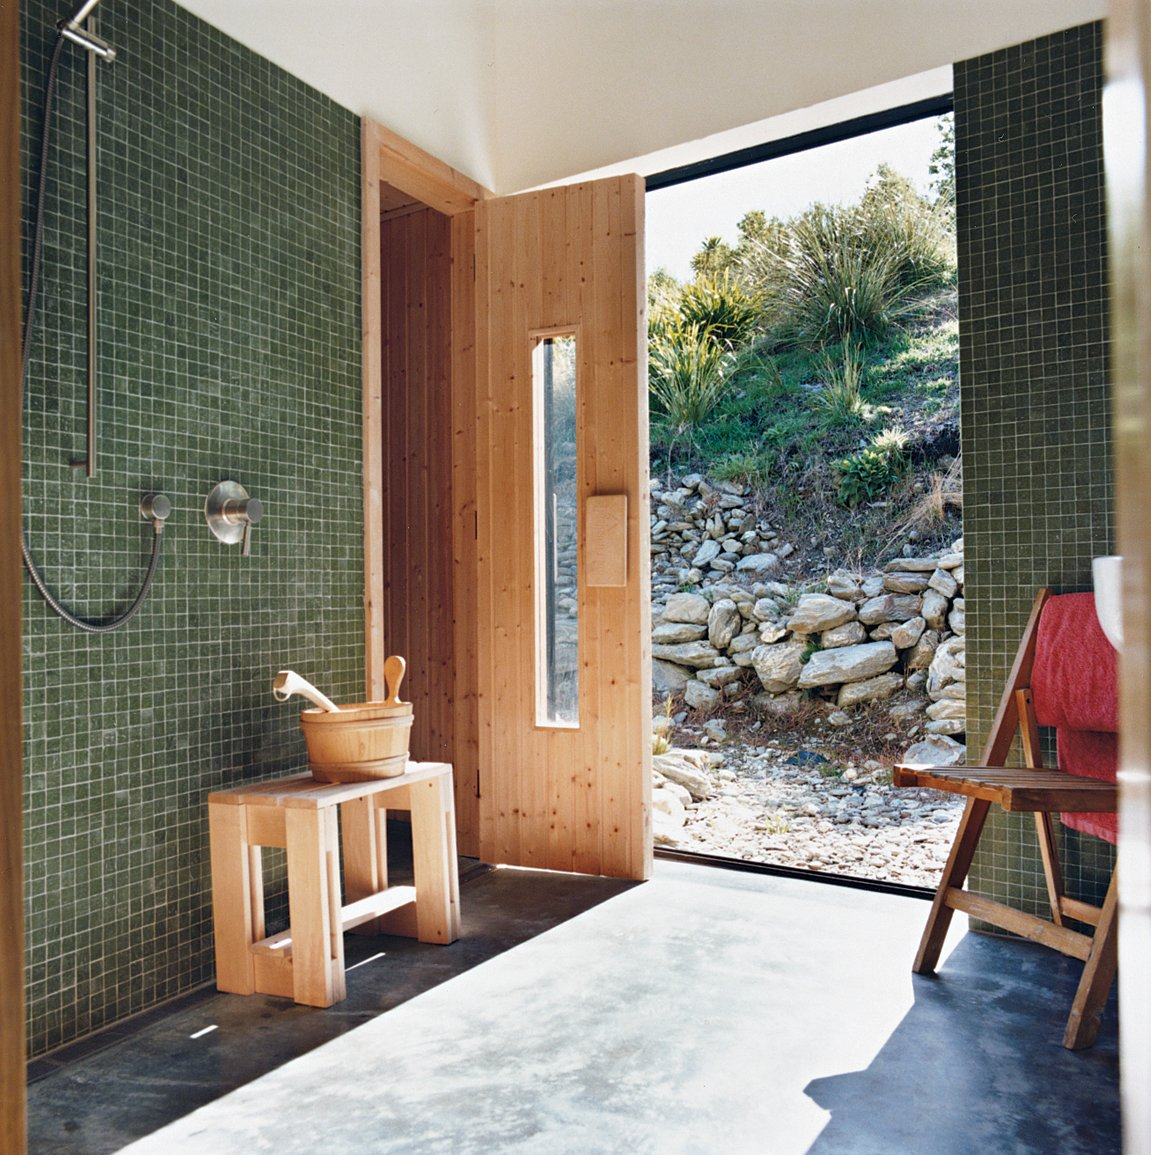 Bath Room and Concrete Floor Queenstown gets cold in winter, hence the installation of a sauna. Outside, the landscaping was kept deliberately casual, with rock walls and gravel paths.  Drift Bay House